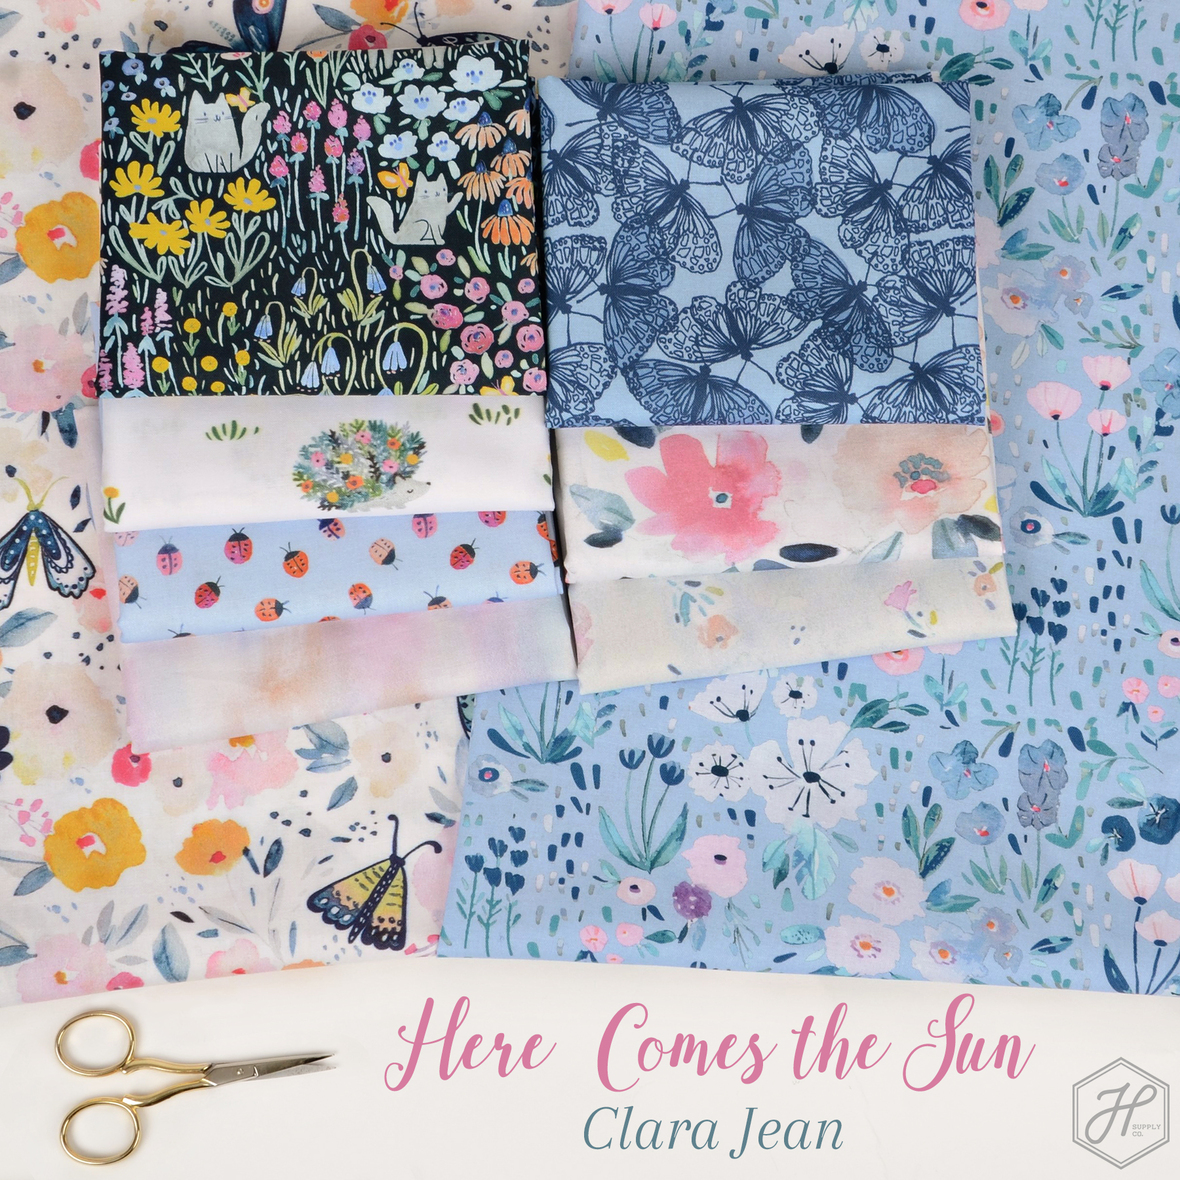 Here-Comes-the-Sun-Fabric-Poster-Clara-Jean-at-Hawthorne-Supply-Co